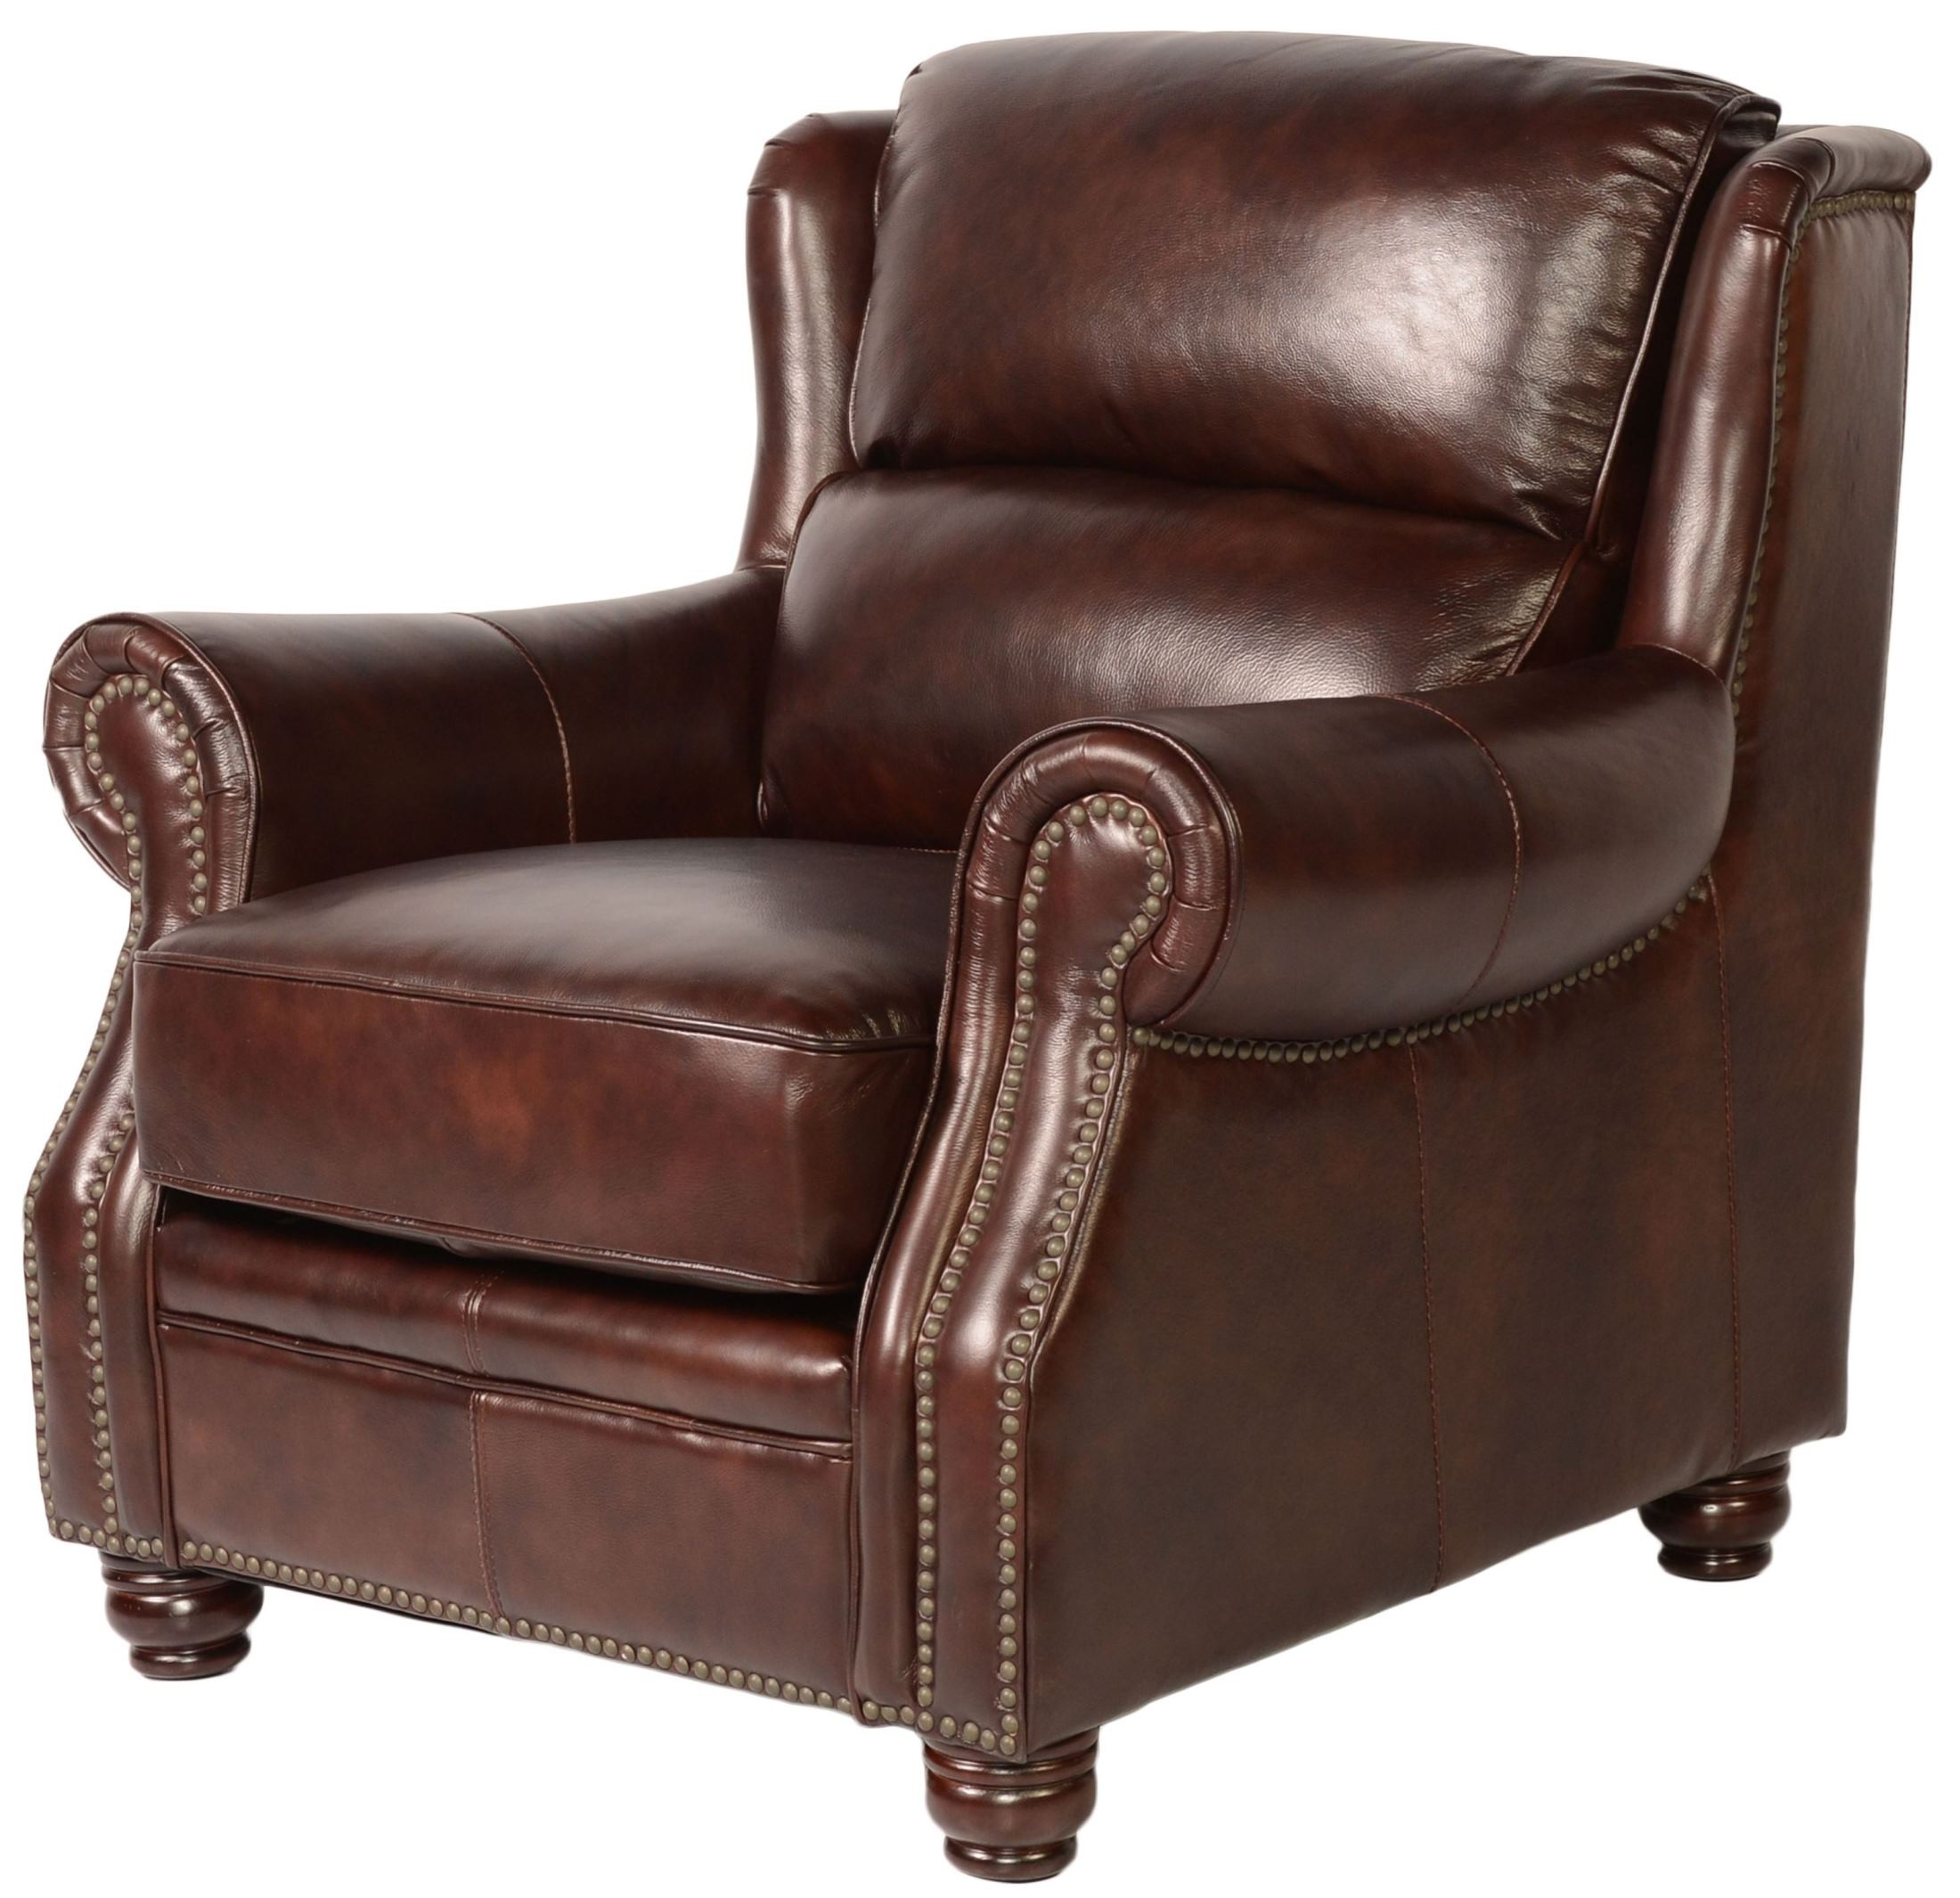 Appalachian Rustic Savauge Leather Living Room Set From